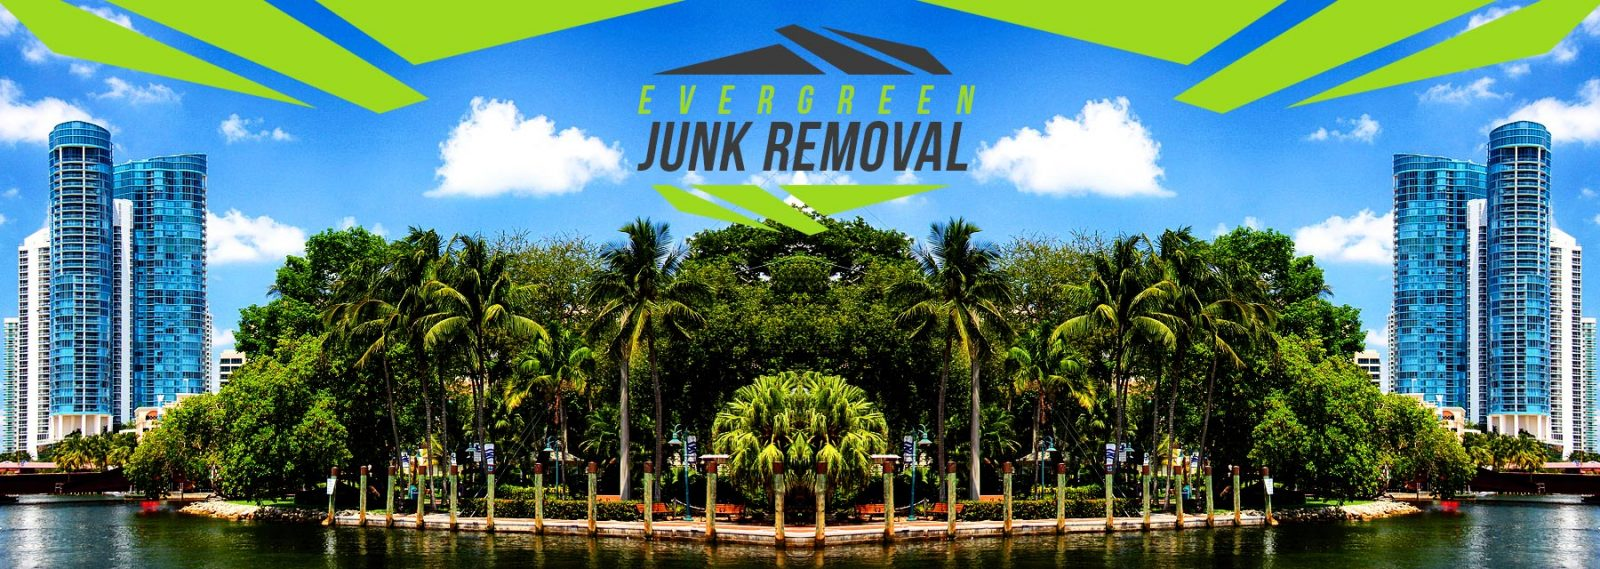 Atlantic Beach Hot Tub Removal Company